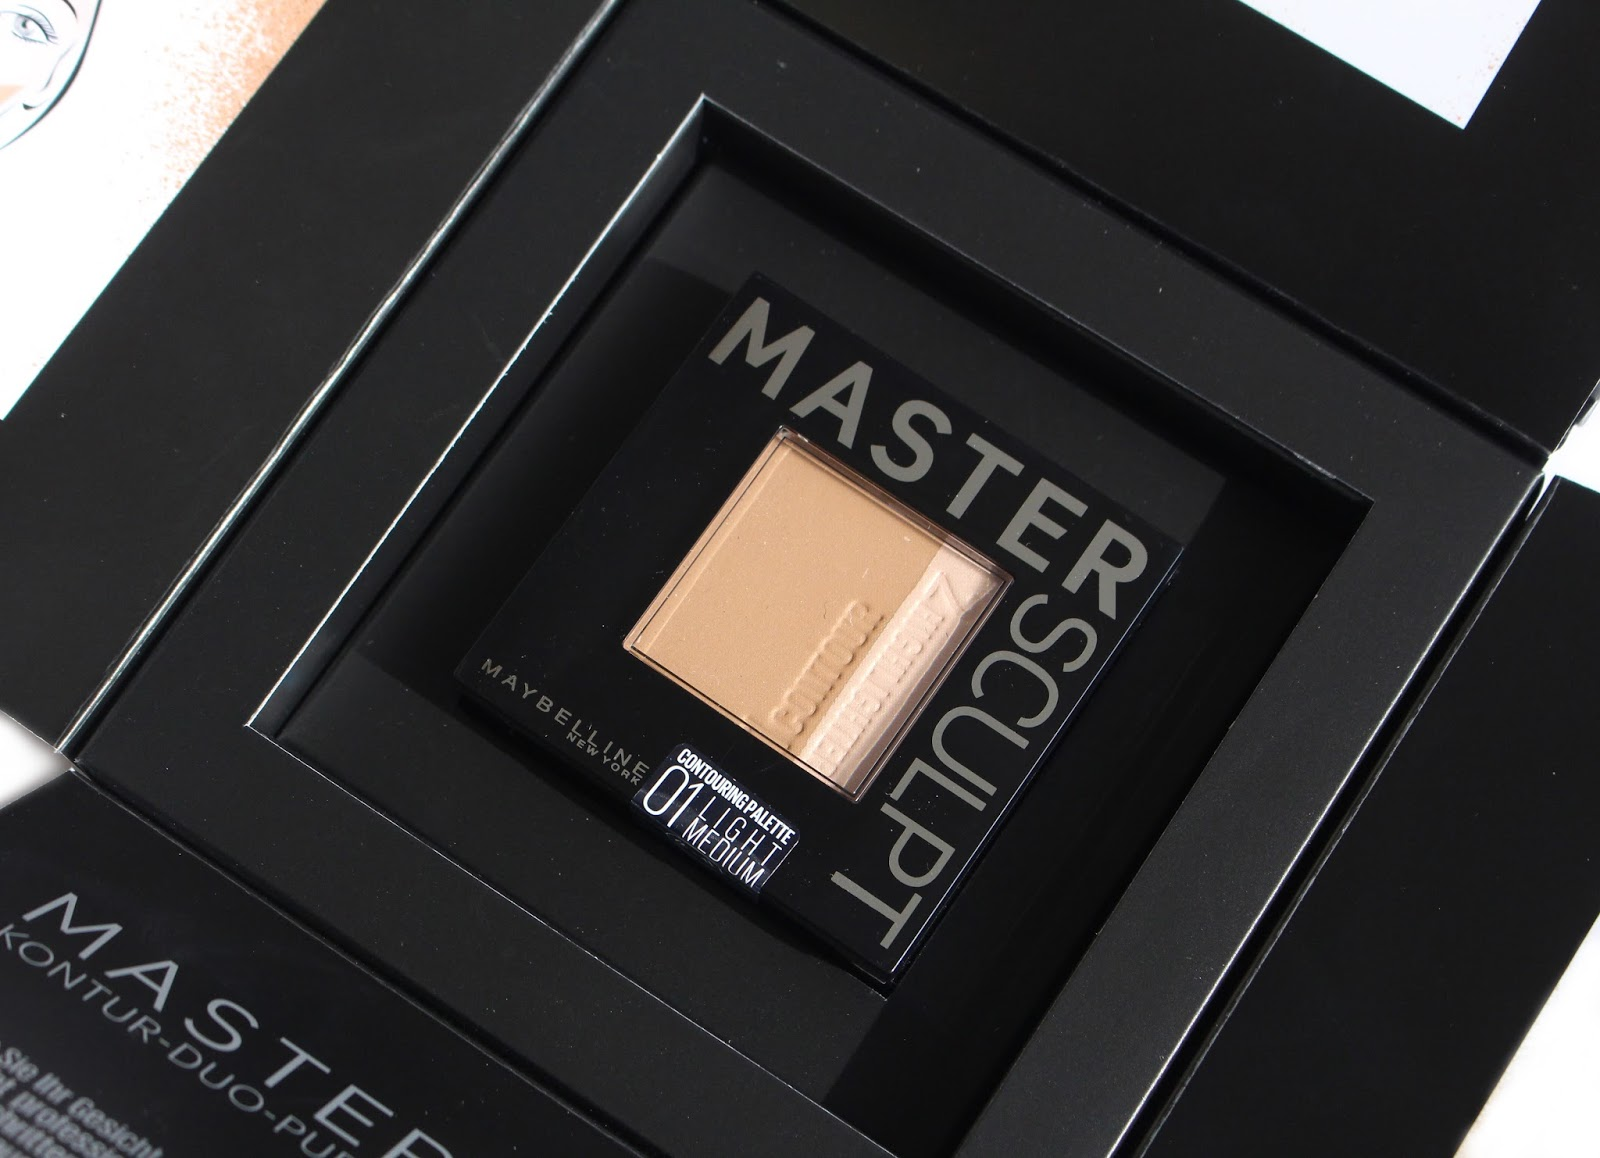 Contouring Rundes Gesicht Maybelline Master Sculpt Contouring Duo Powder Quot 01